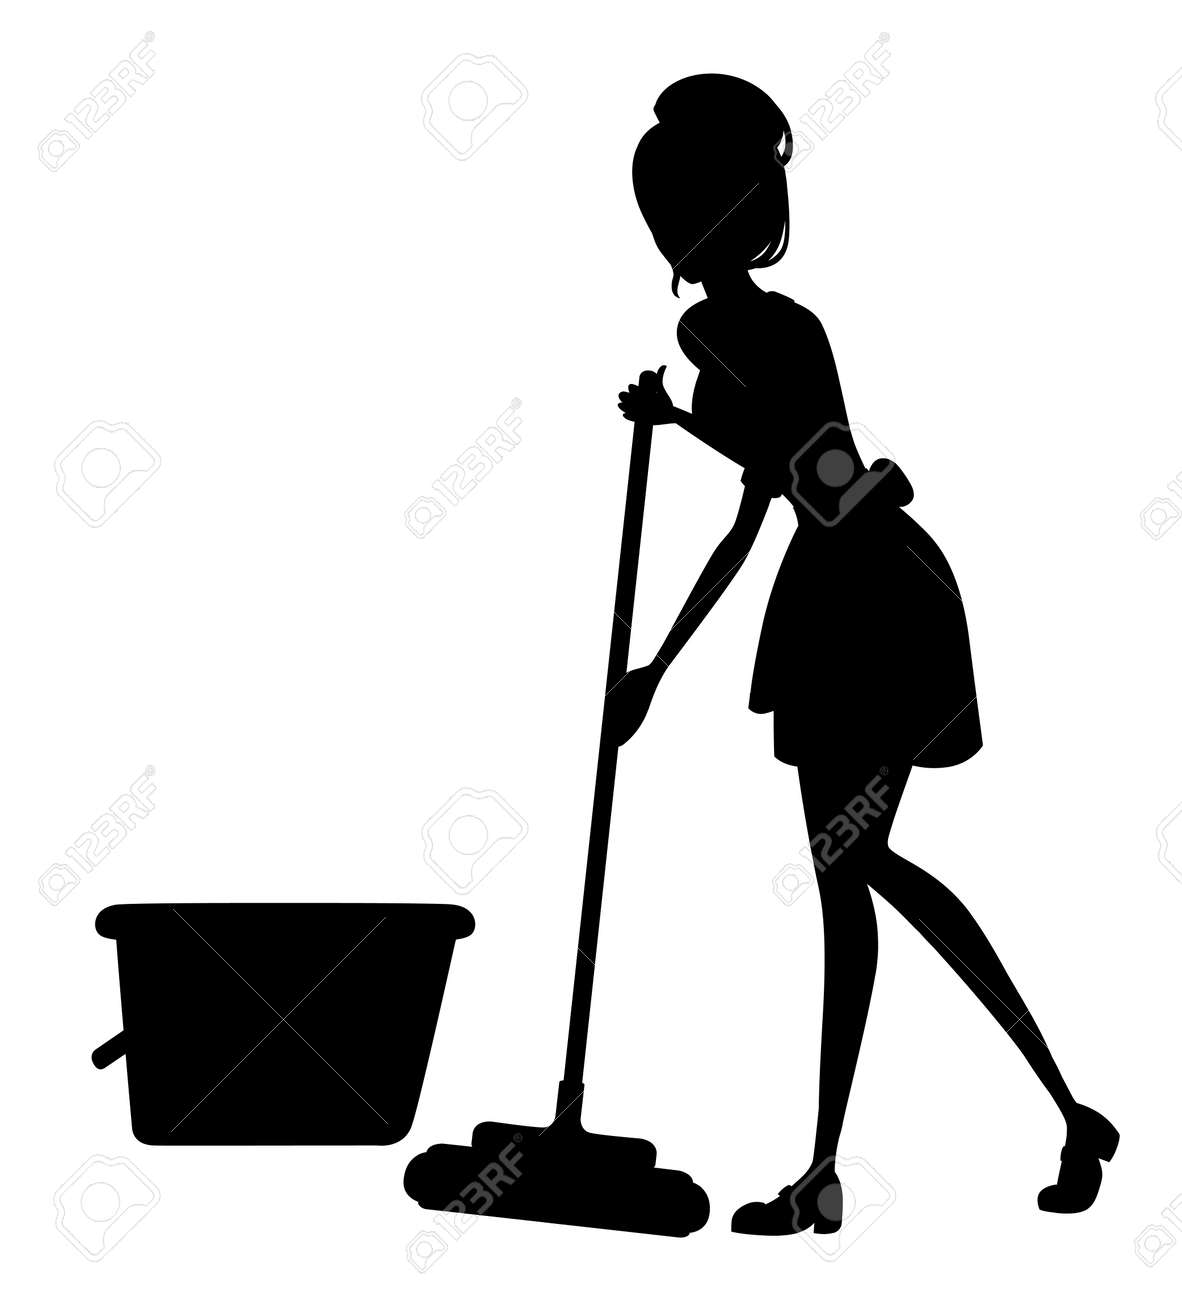 Beautiful maid in classic french outfit. Cartoon character design. Women with brown short hair. Chambermaid cleaning floor with mop silhoutte. Flat vector illustration on white background. - 112411524